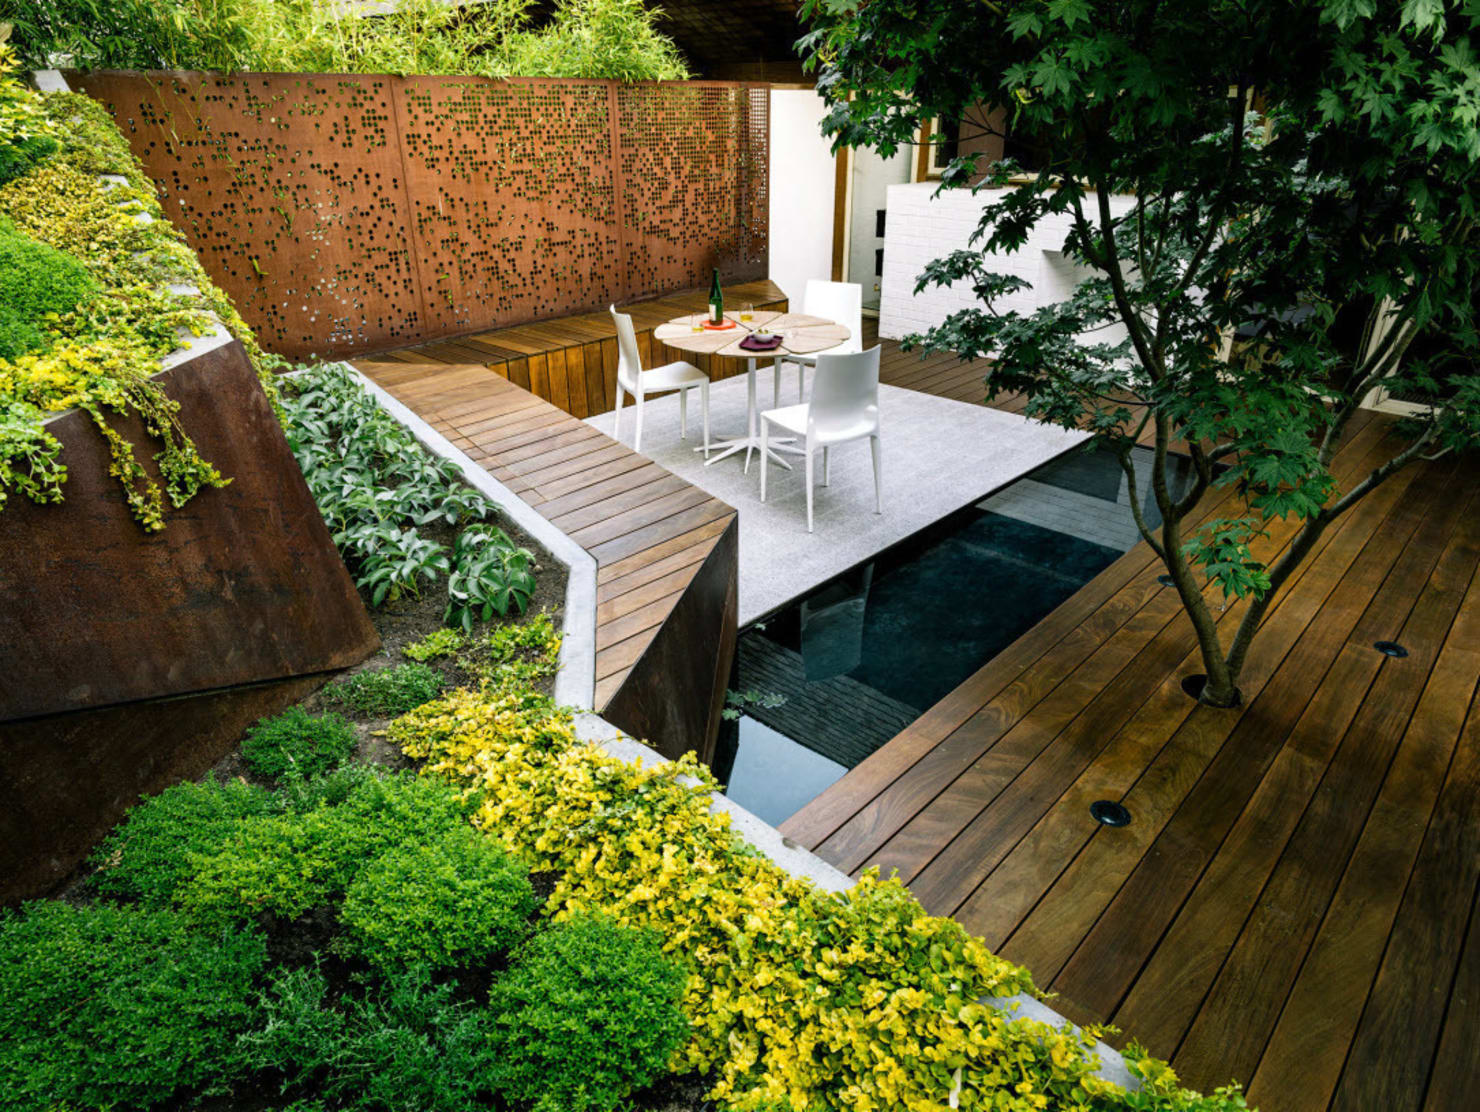 15 awe-inspiring modern garden ideas to motivate you